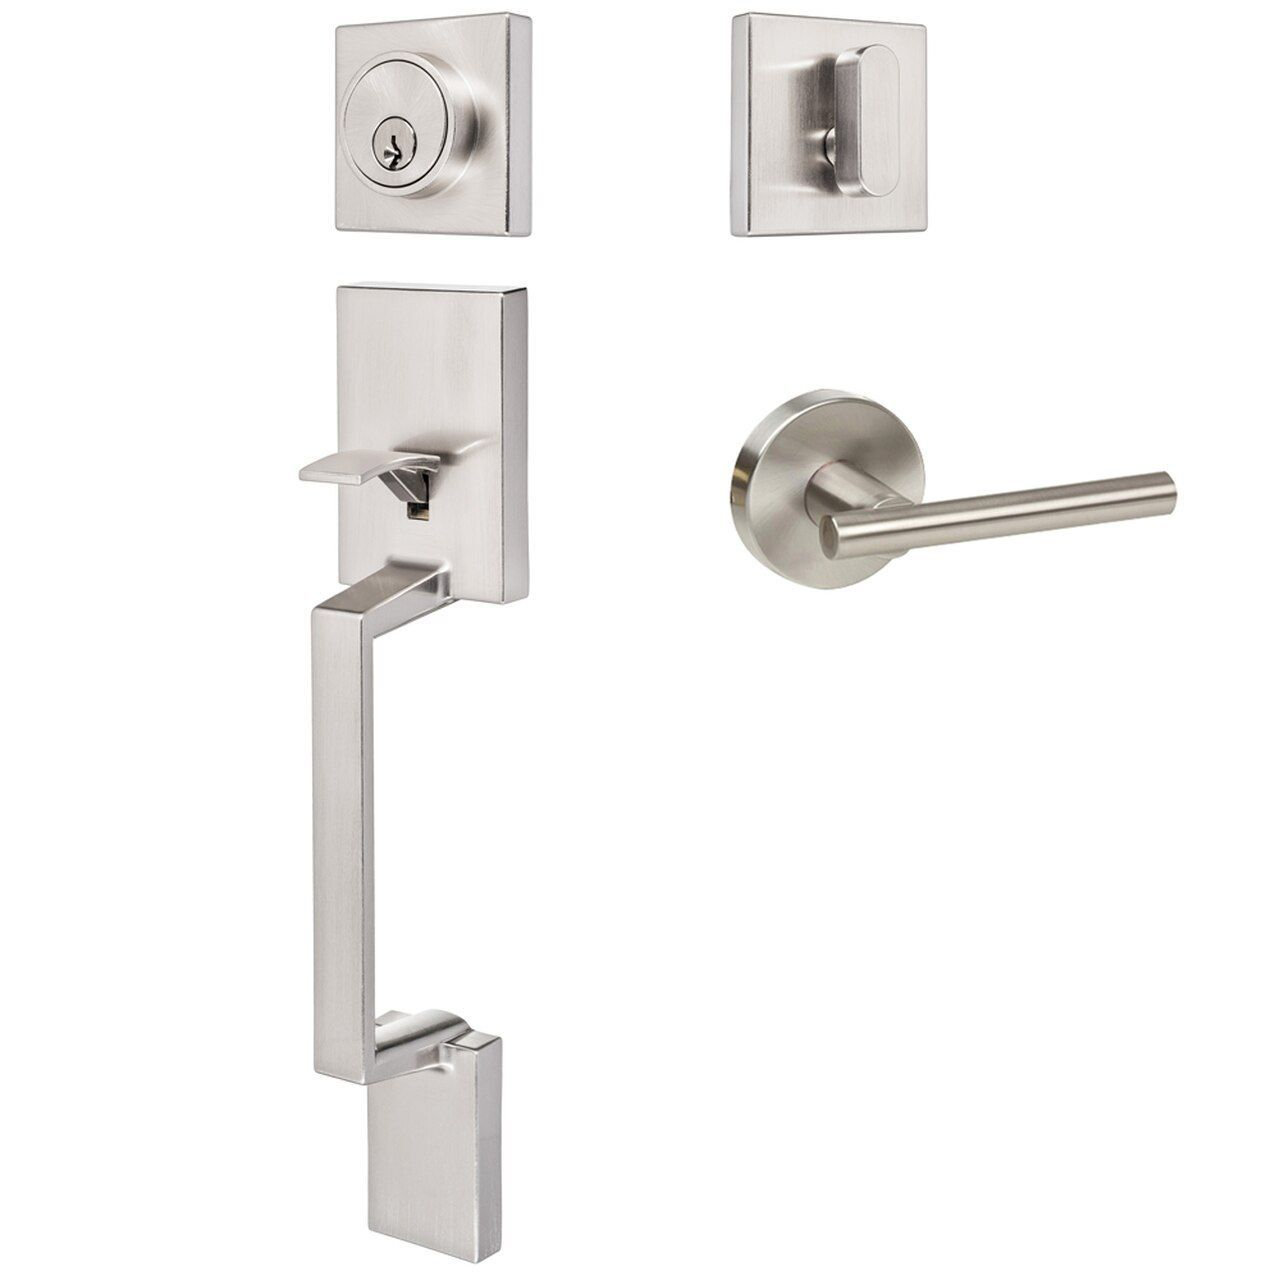 Keeneland Design Satin Nickel Contemporary Handleset with Kain Lever